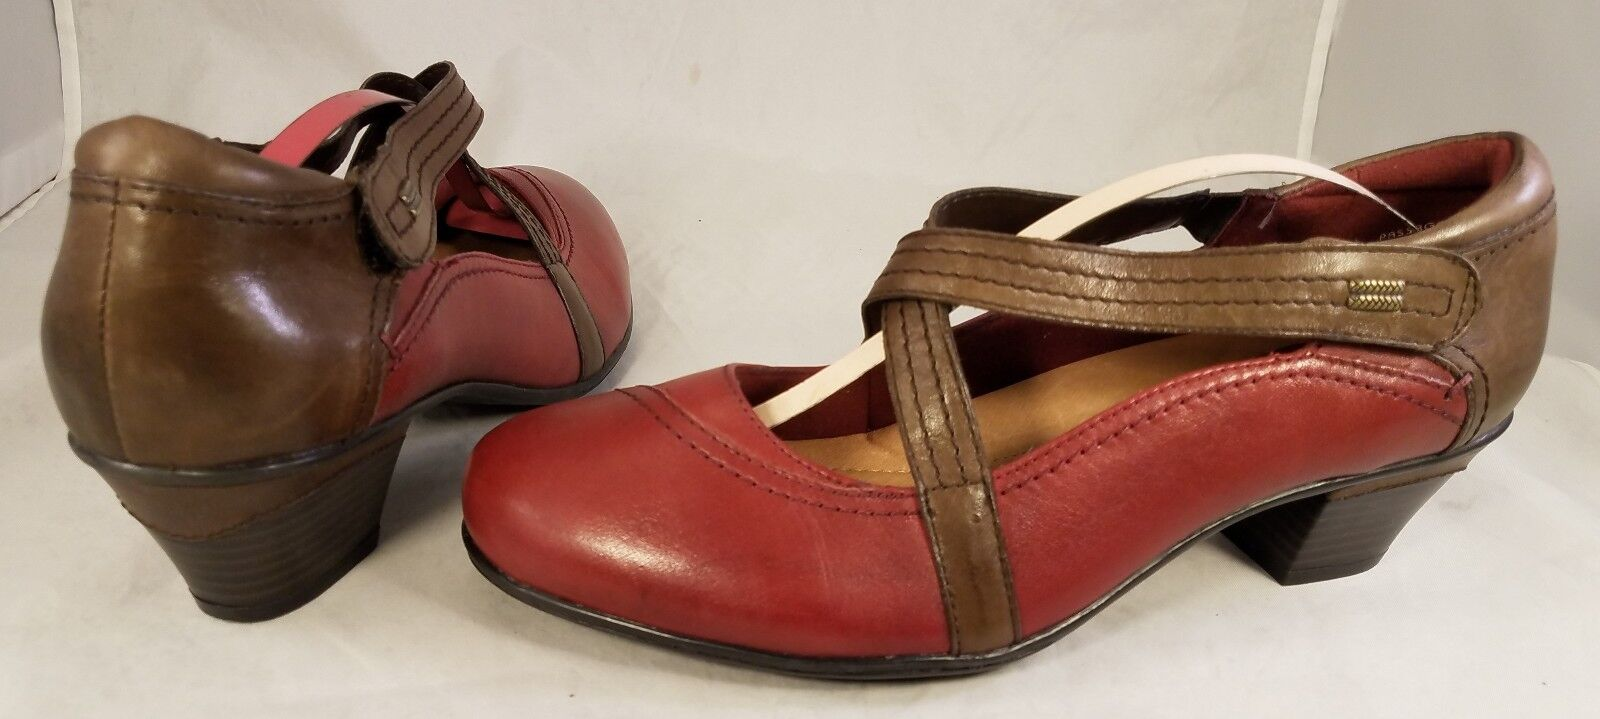 EARTH PASSAGE BORDEAUX WOMAN schuhe MARY MARY MARY JANES rot braun Größe US 10 B EUC e960ee